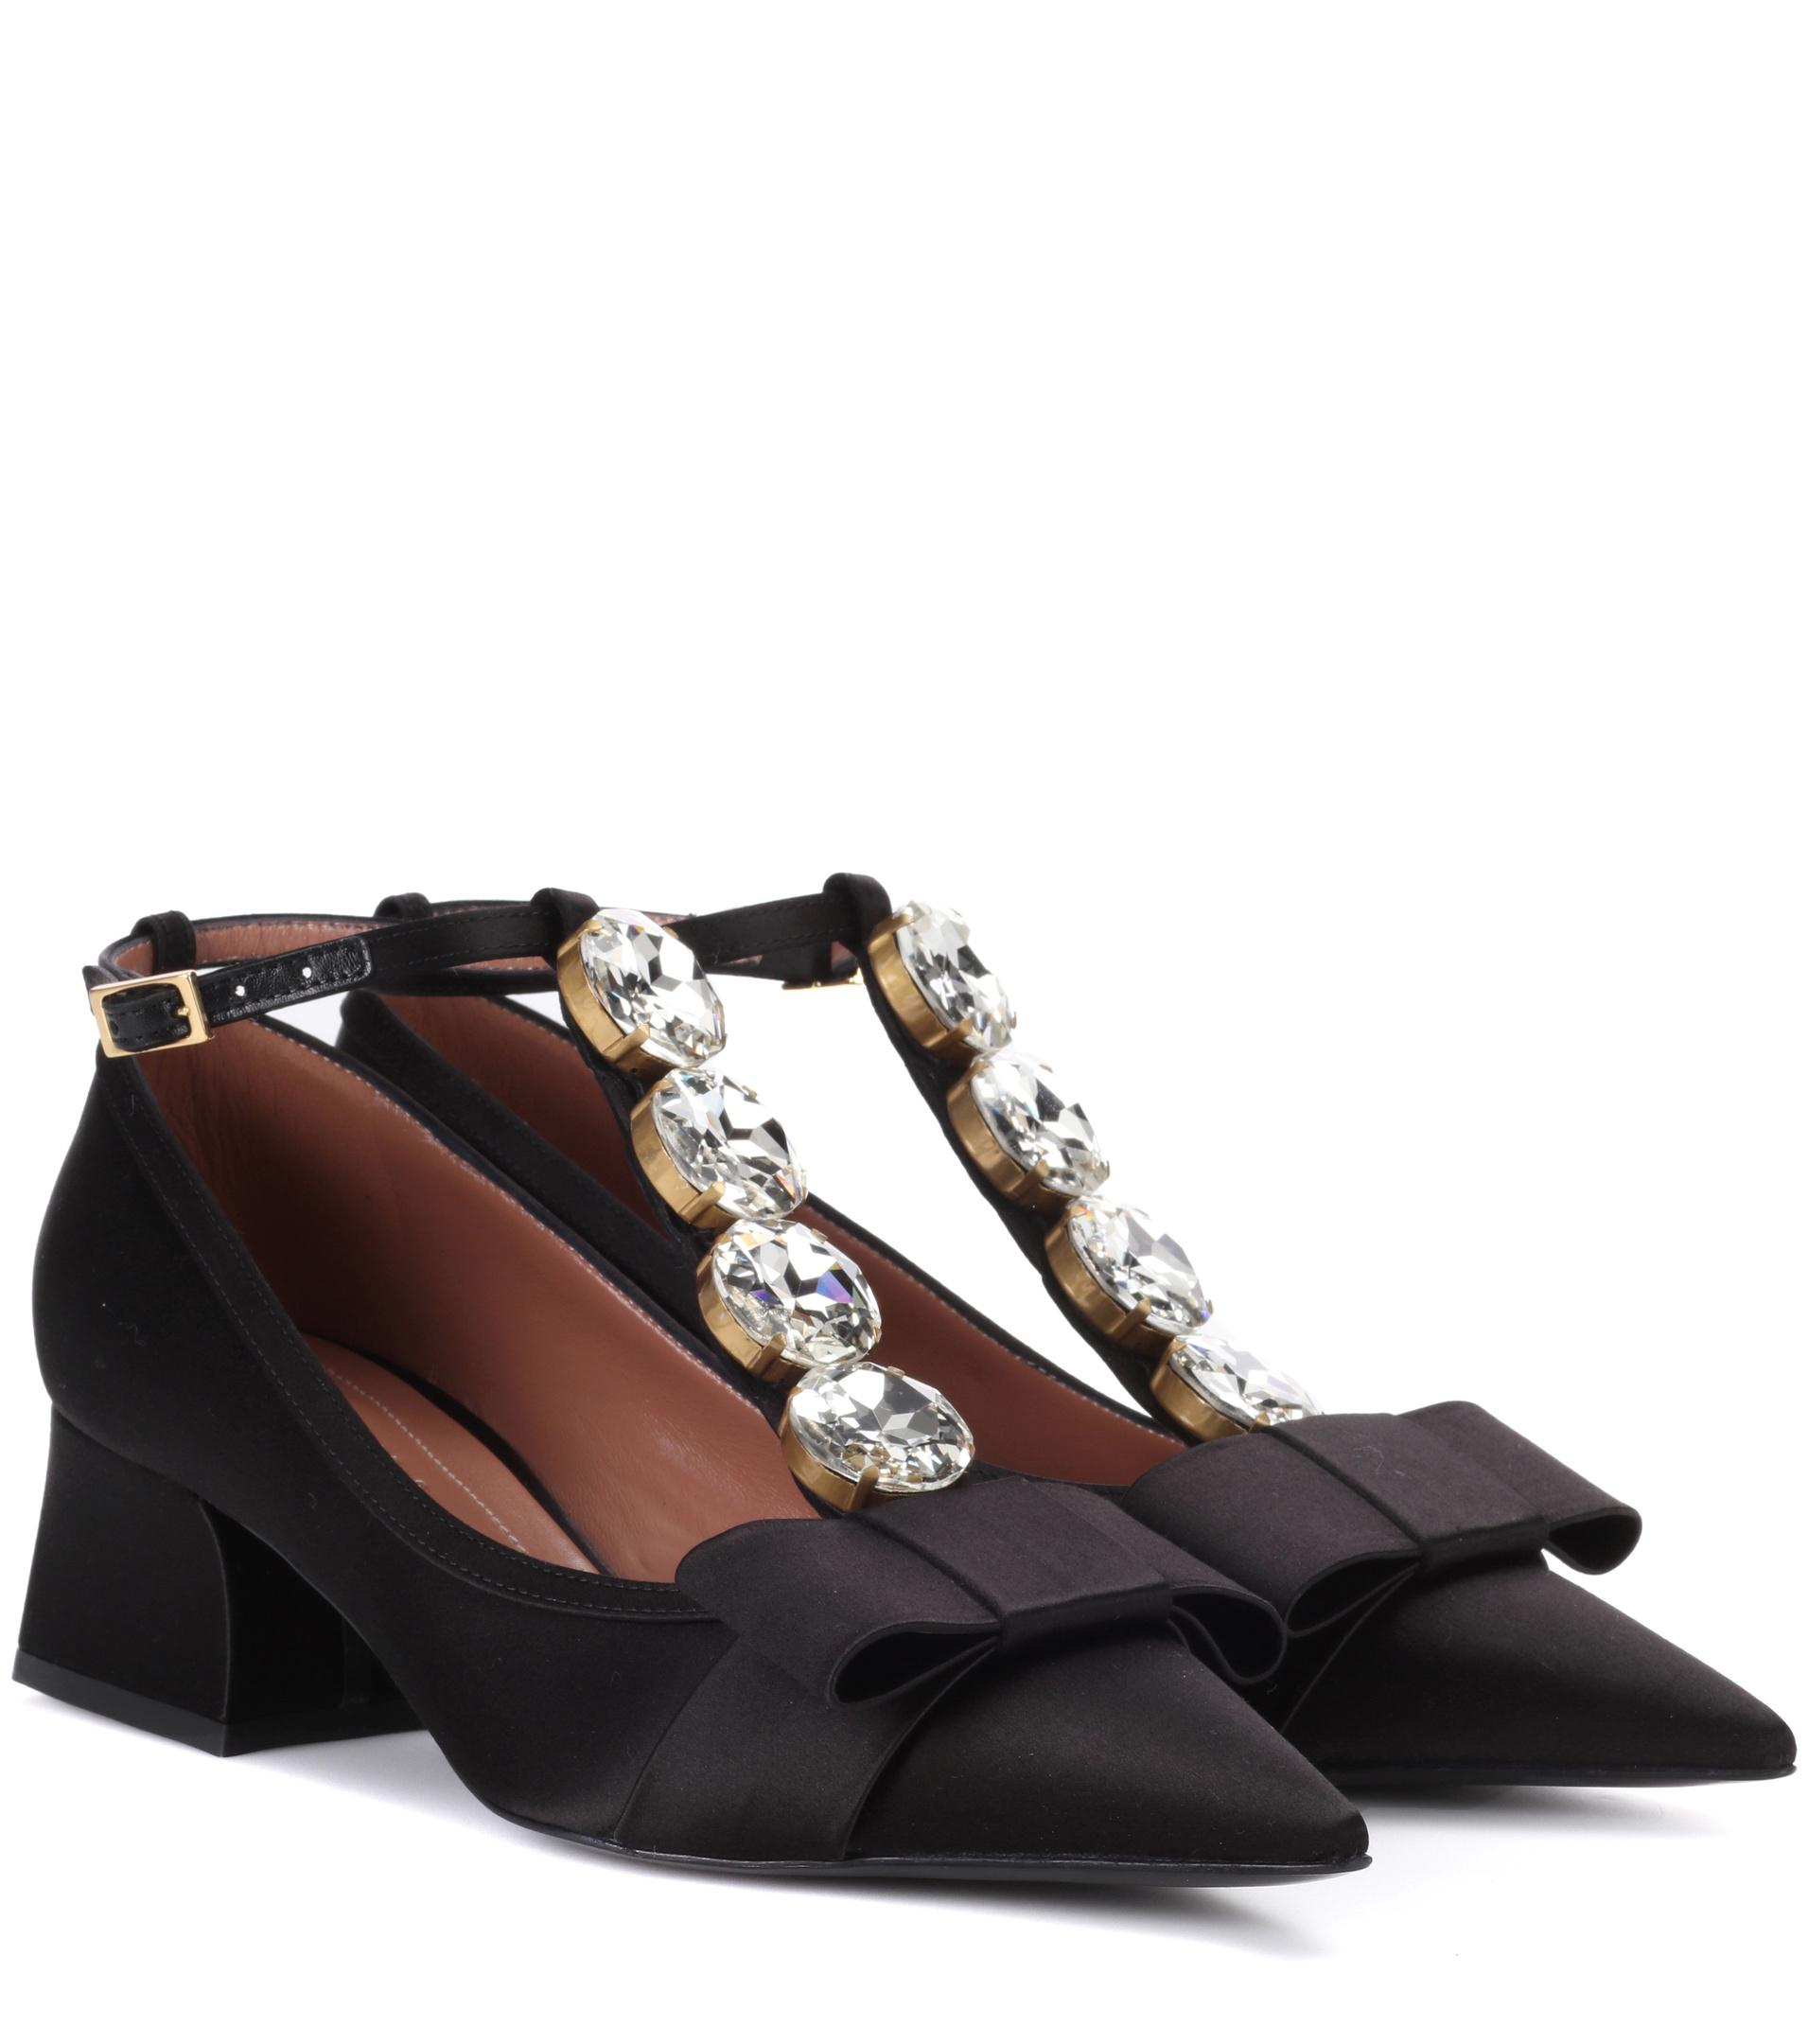 Marni Satin Embellished Pumps clearance official site ryC65a